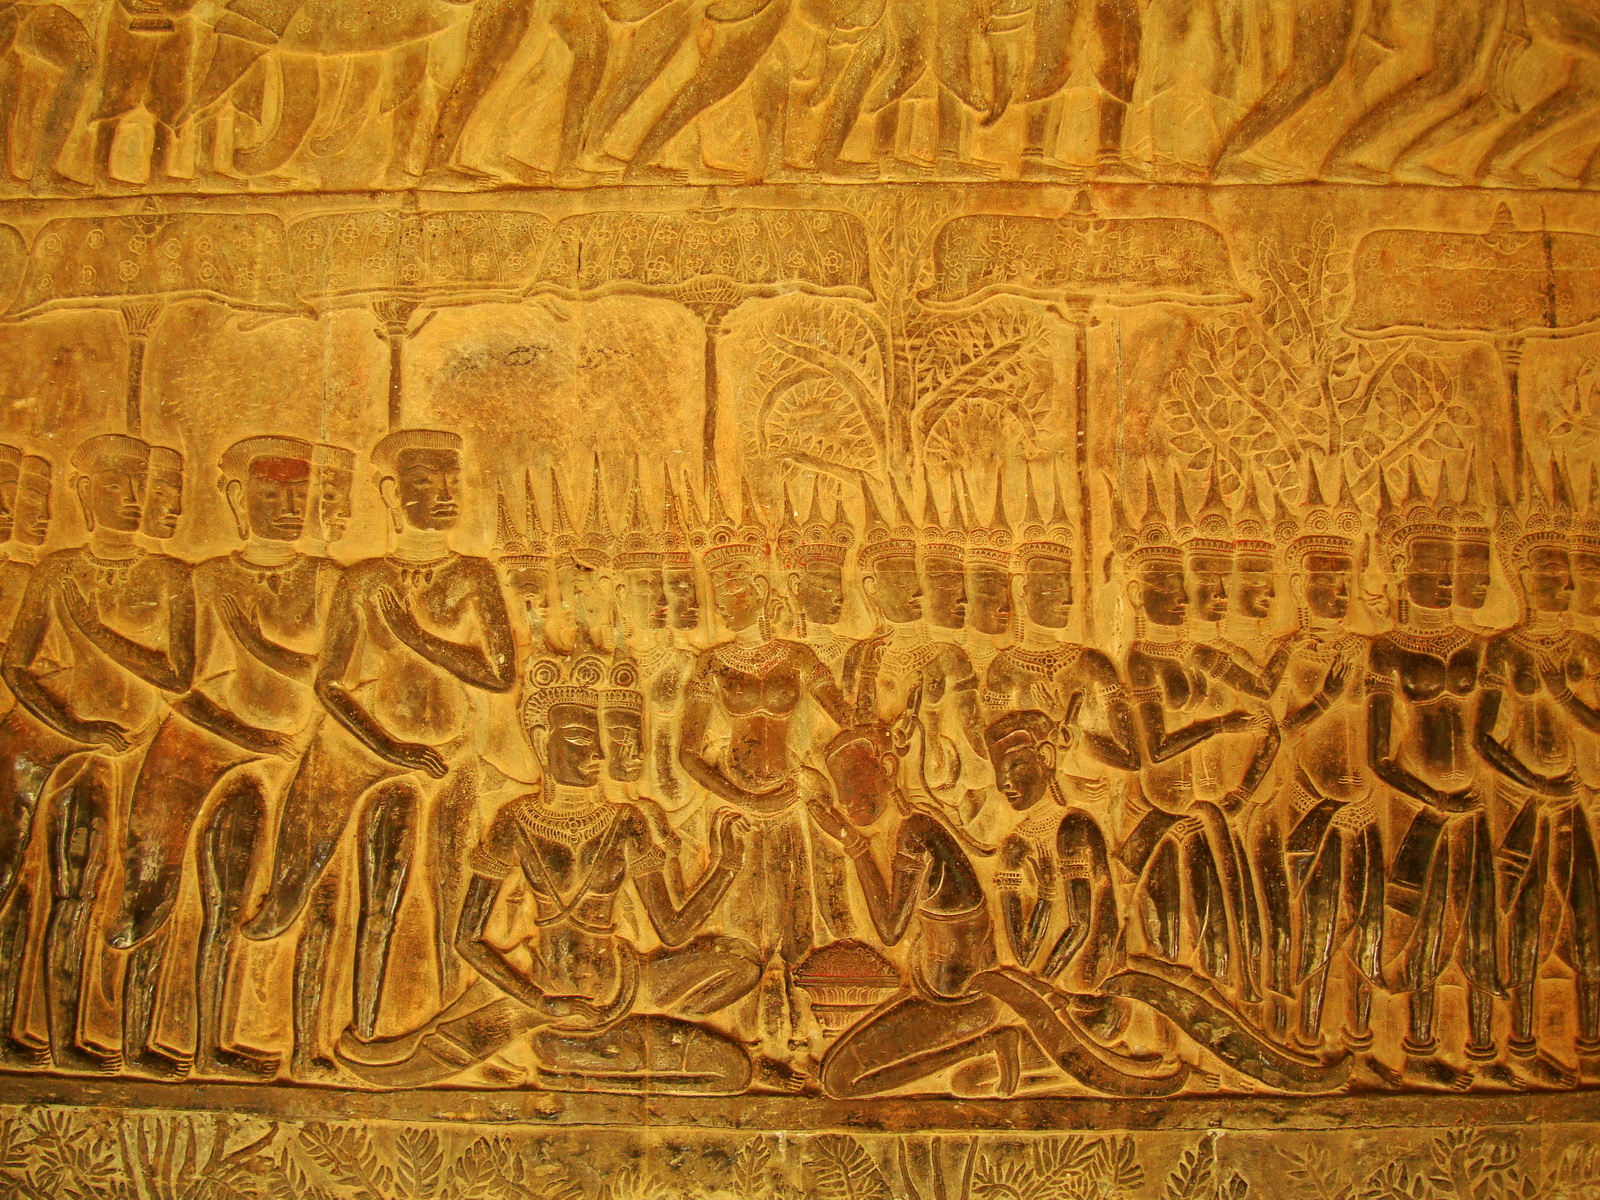 Angkor Wat Bas relief S Gallery E Wing Heavens and Hells 25